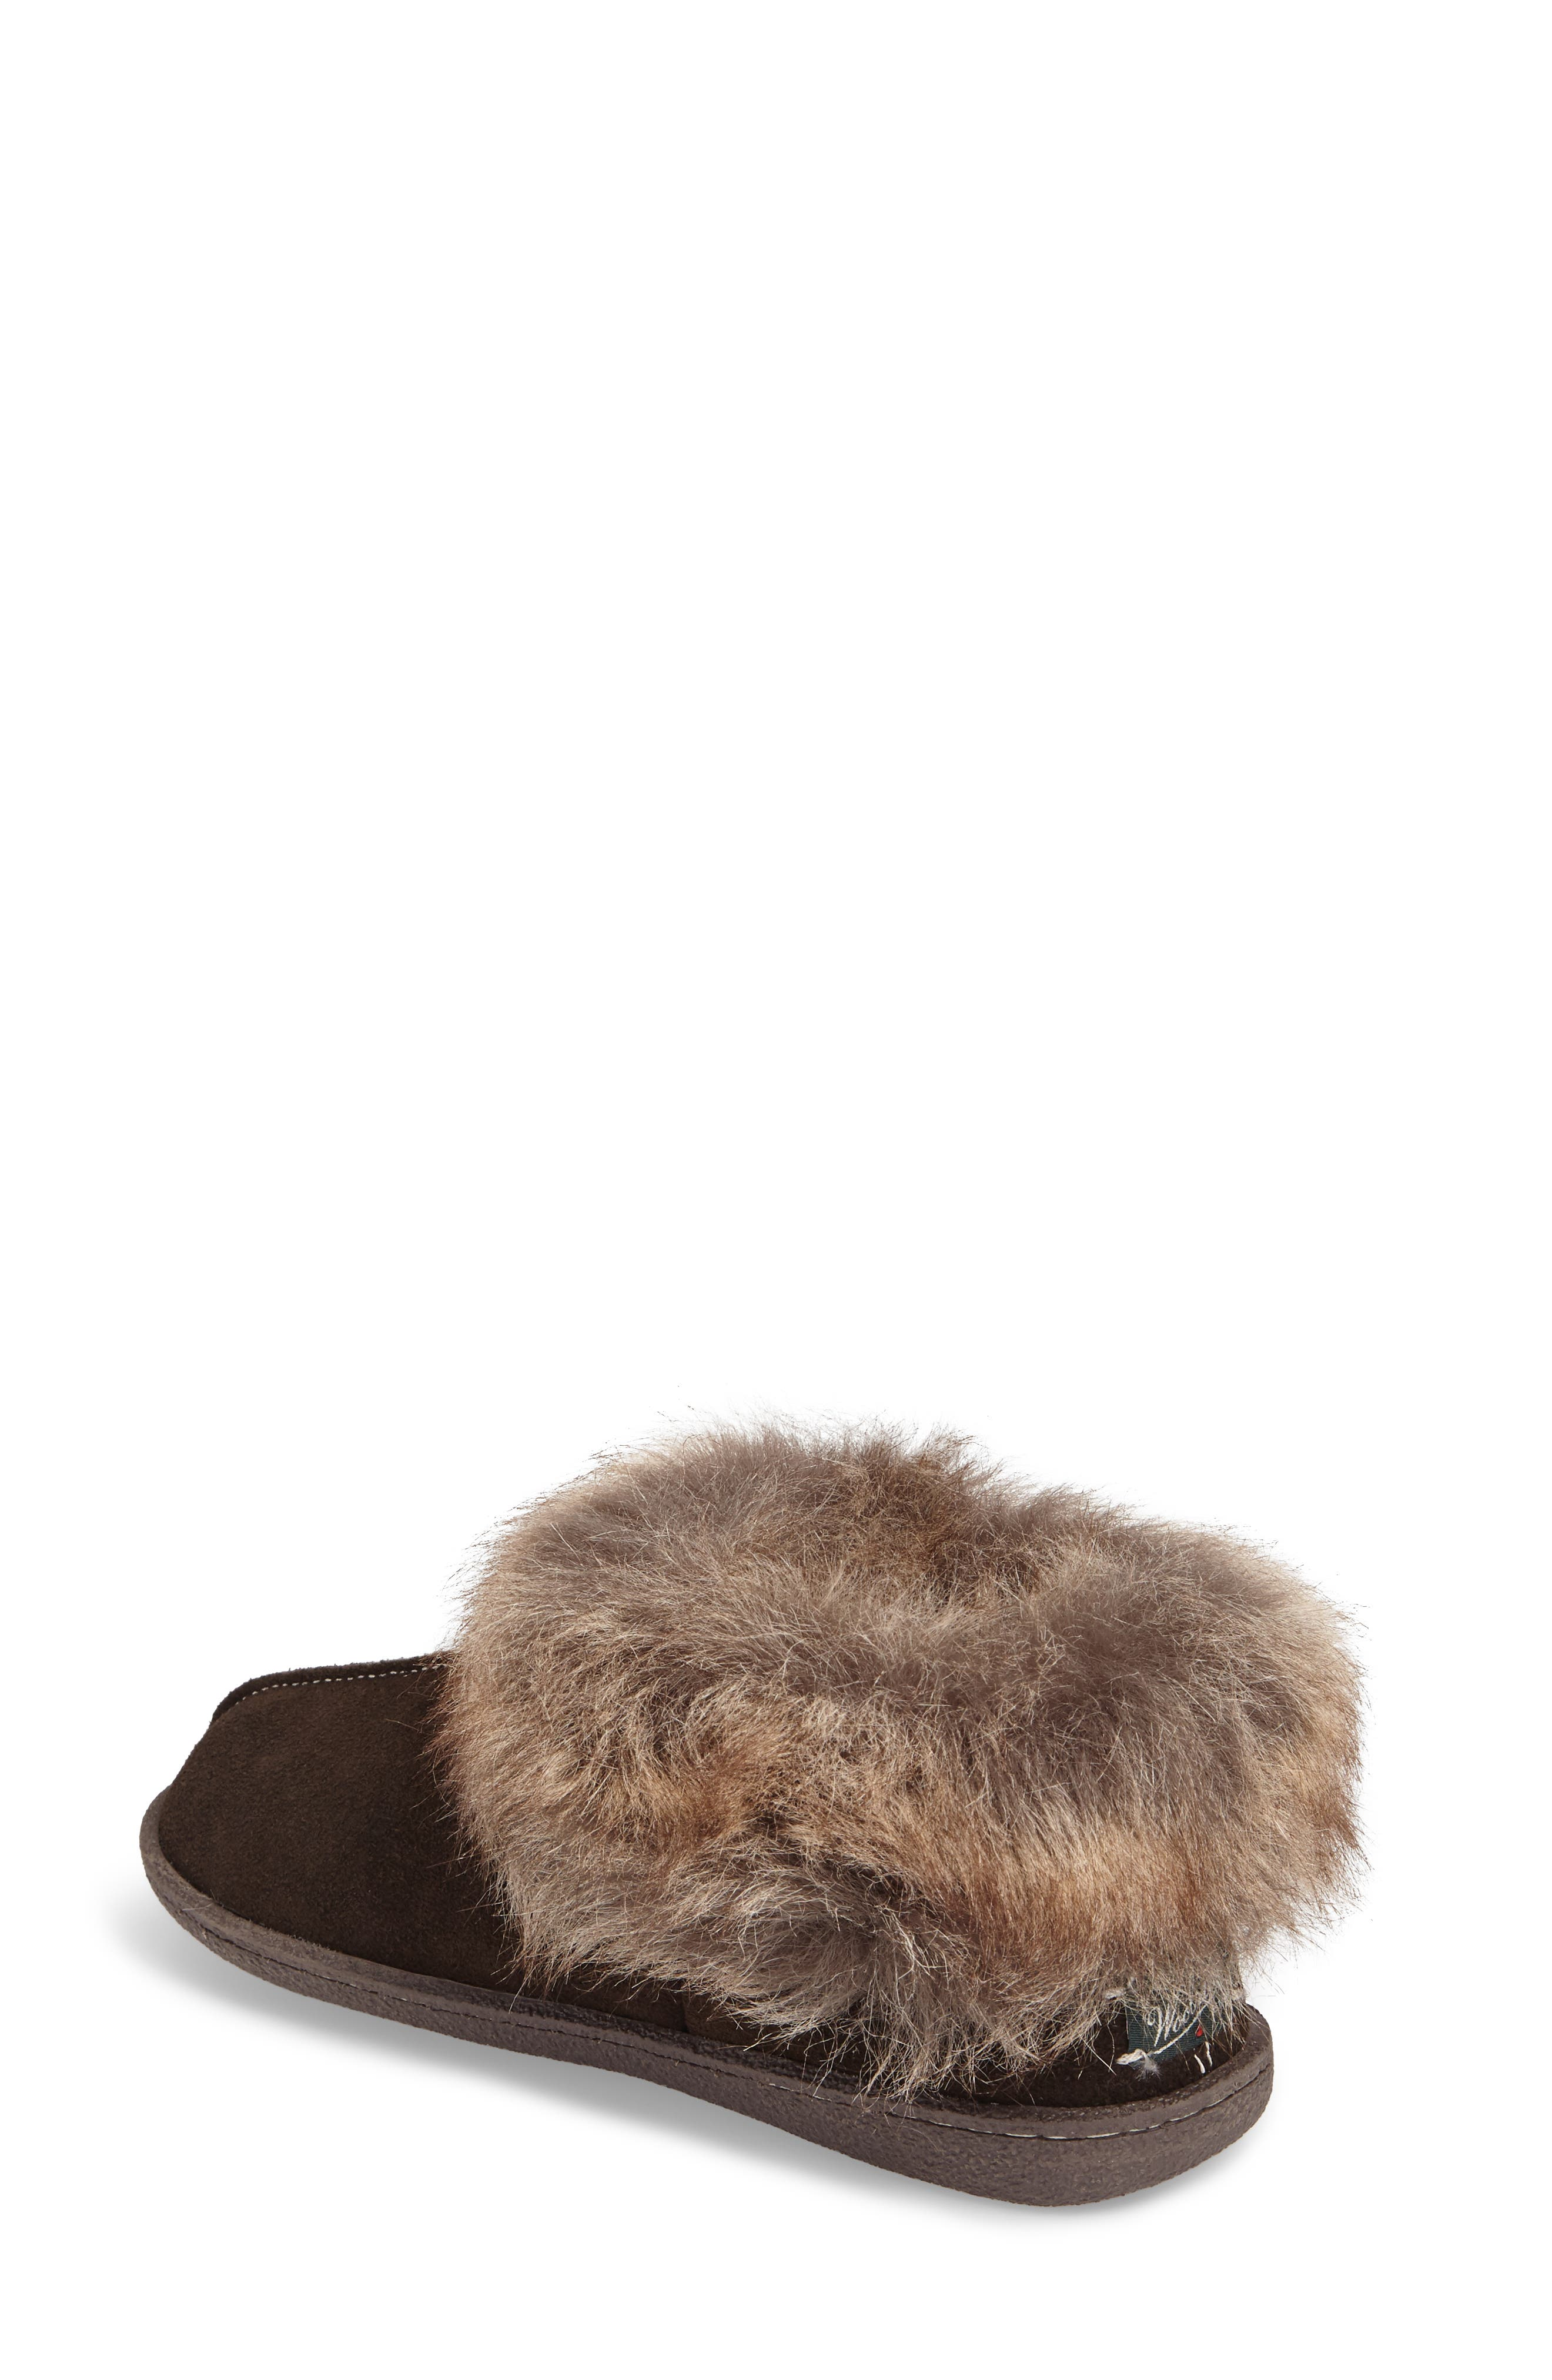 Autumn Ridge II Faux Fur Slipper Bootie,                             Alternate thumbnail 3, color,